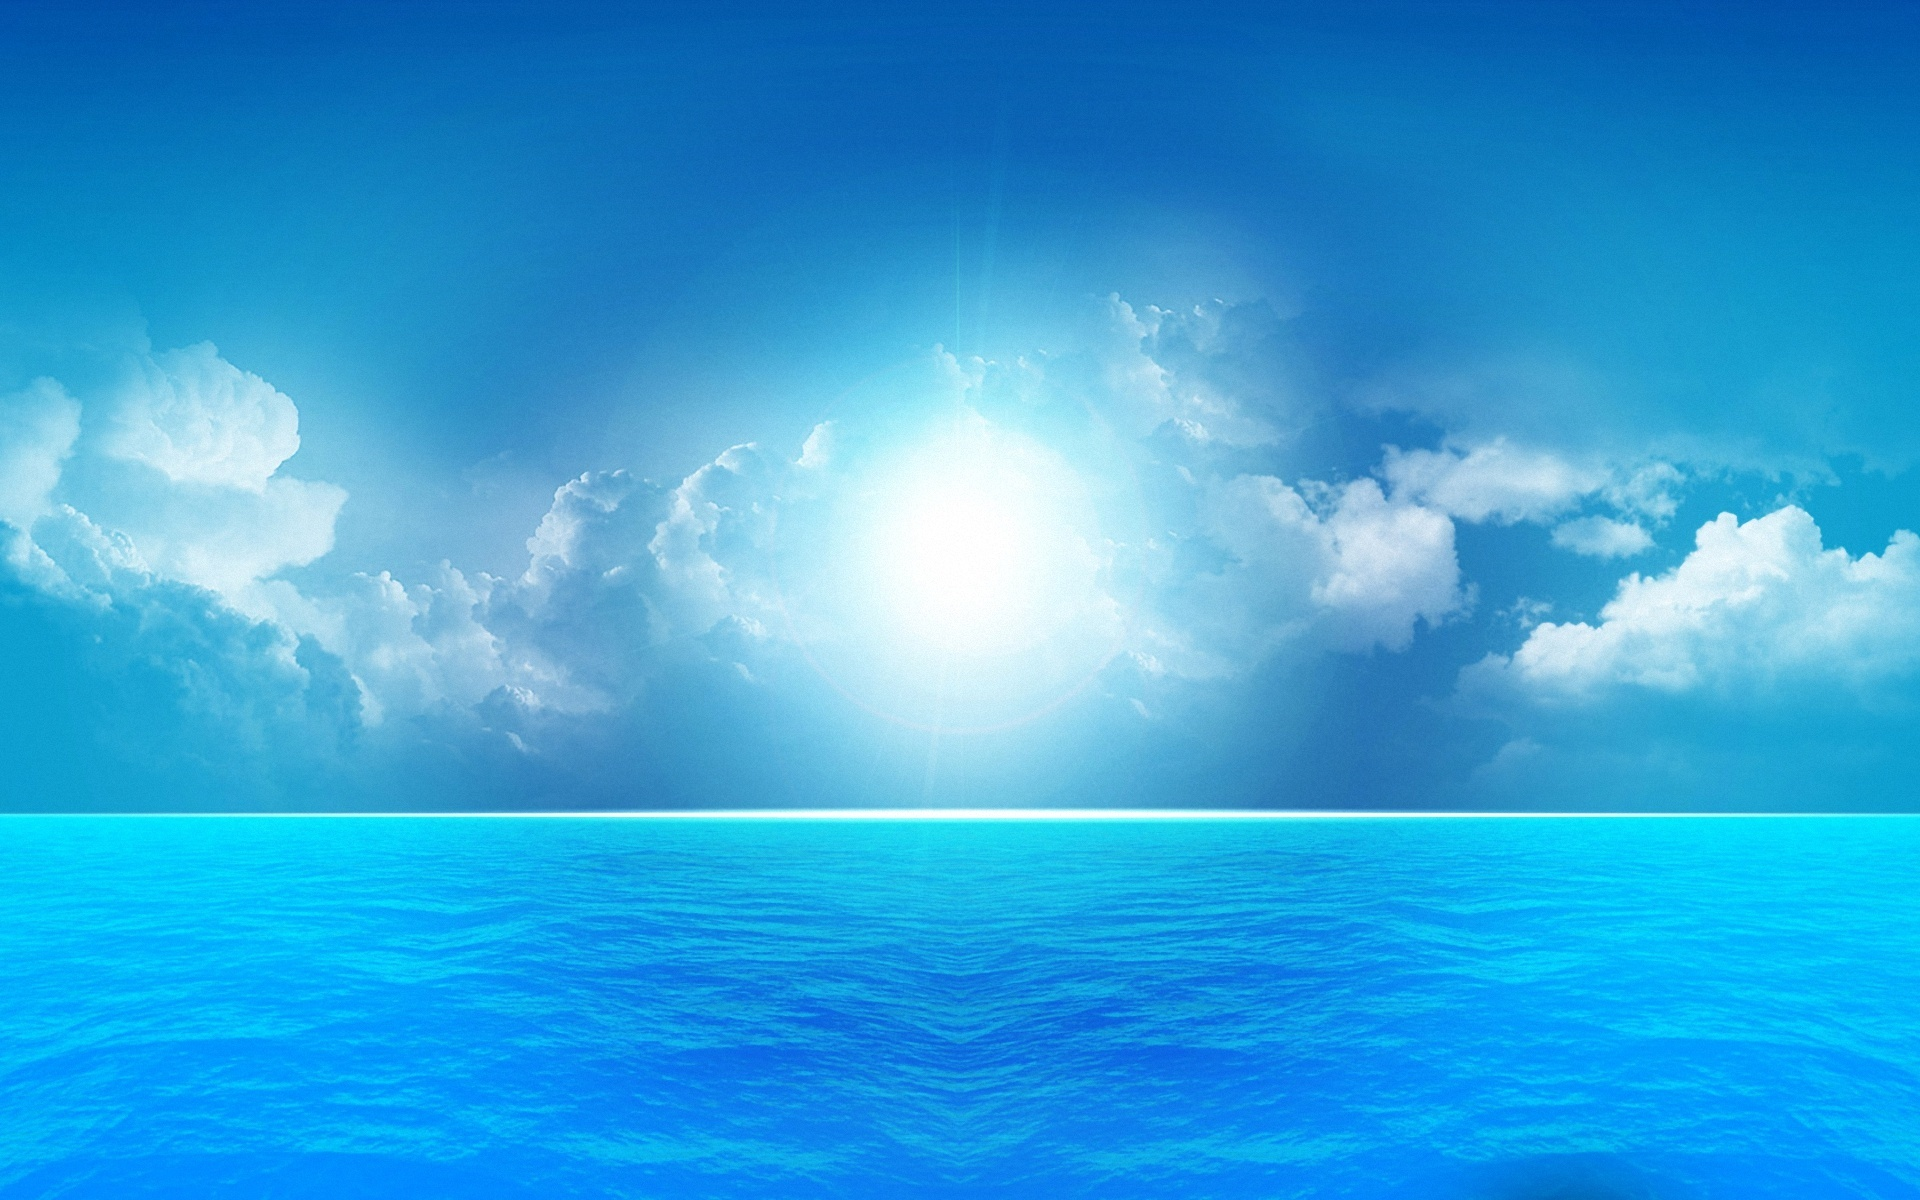 wallpapers nature open sea 1920x1200